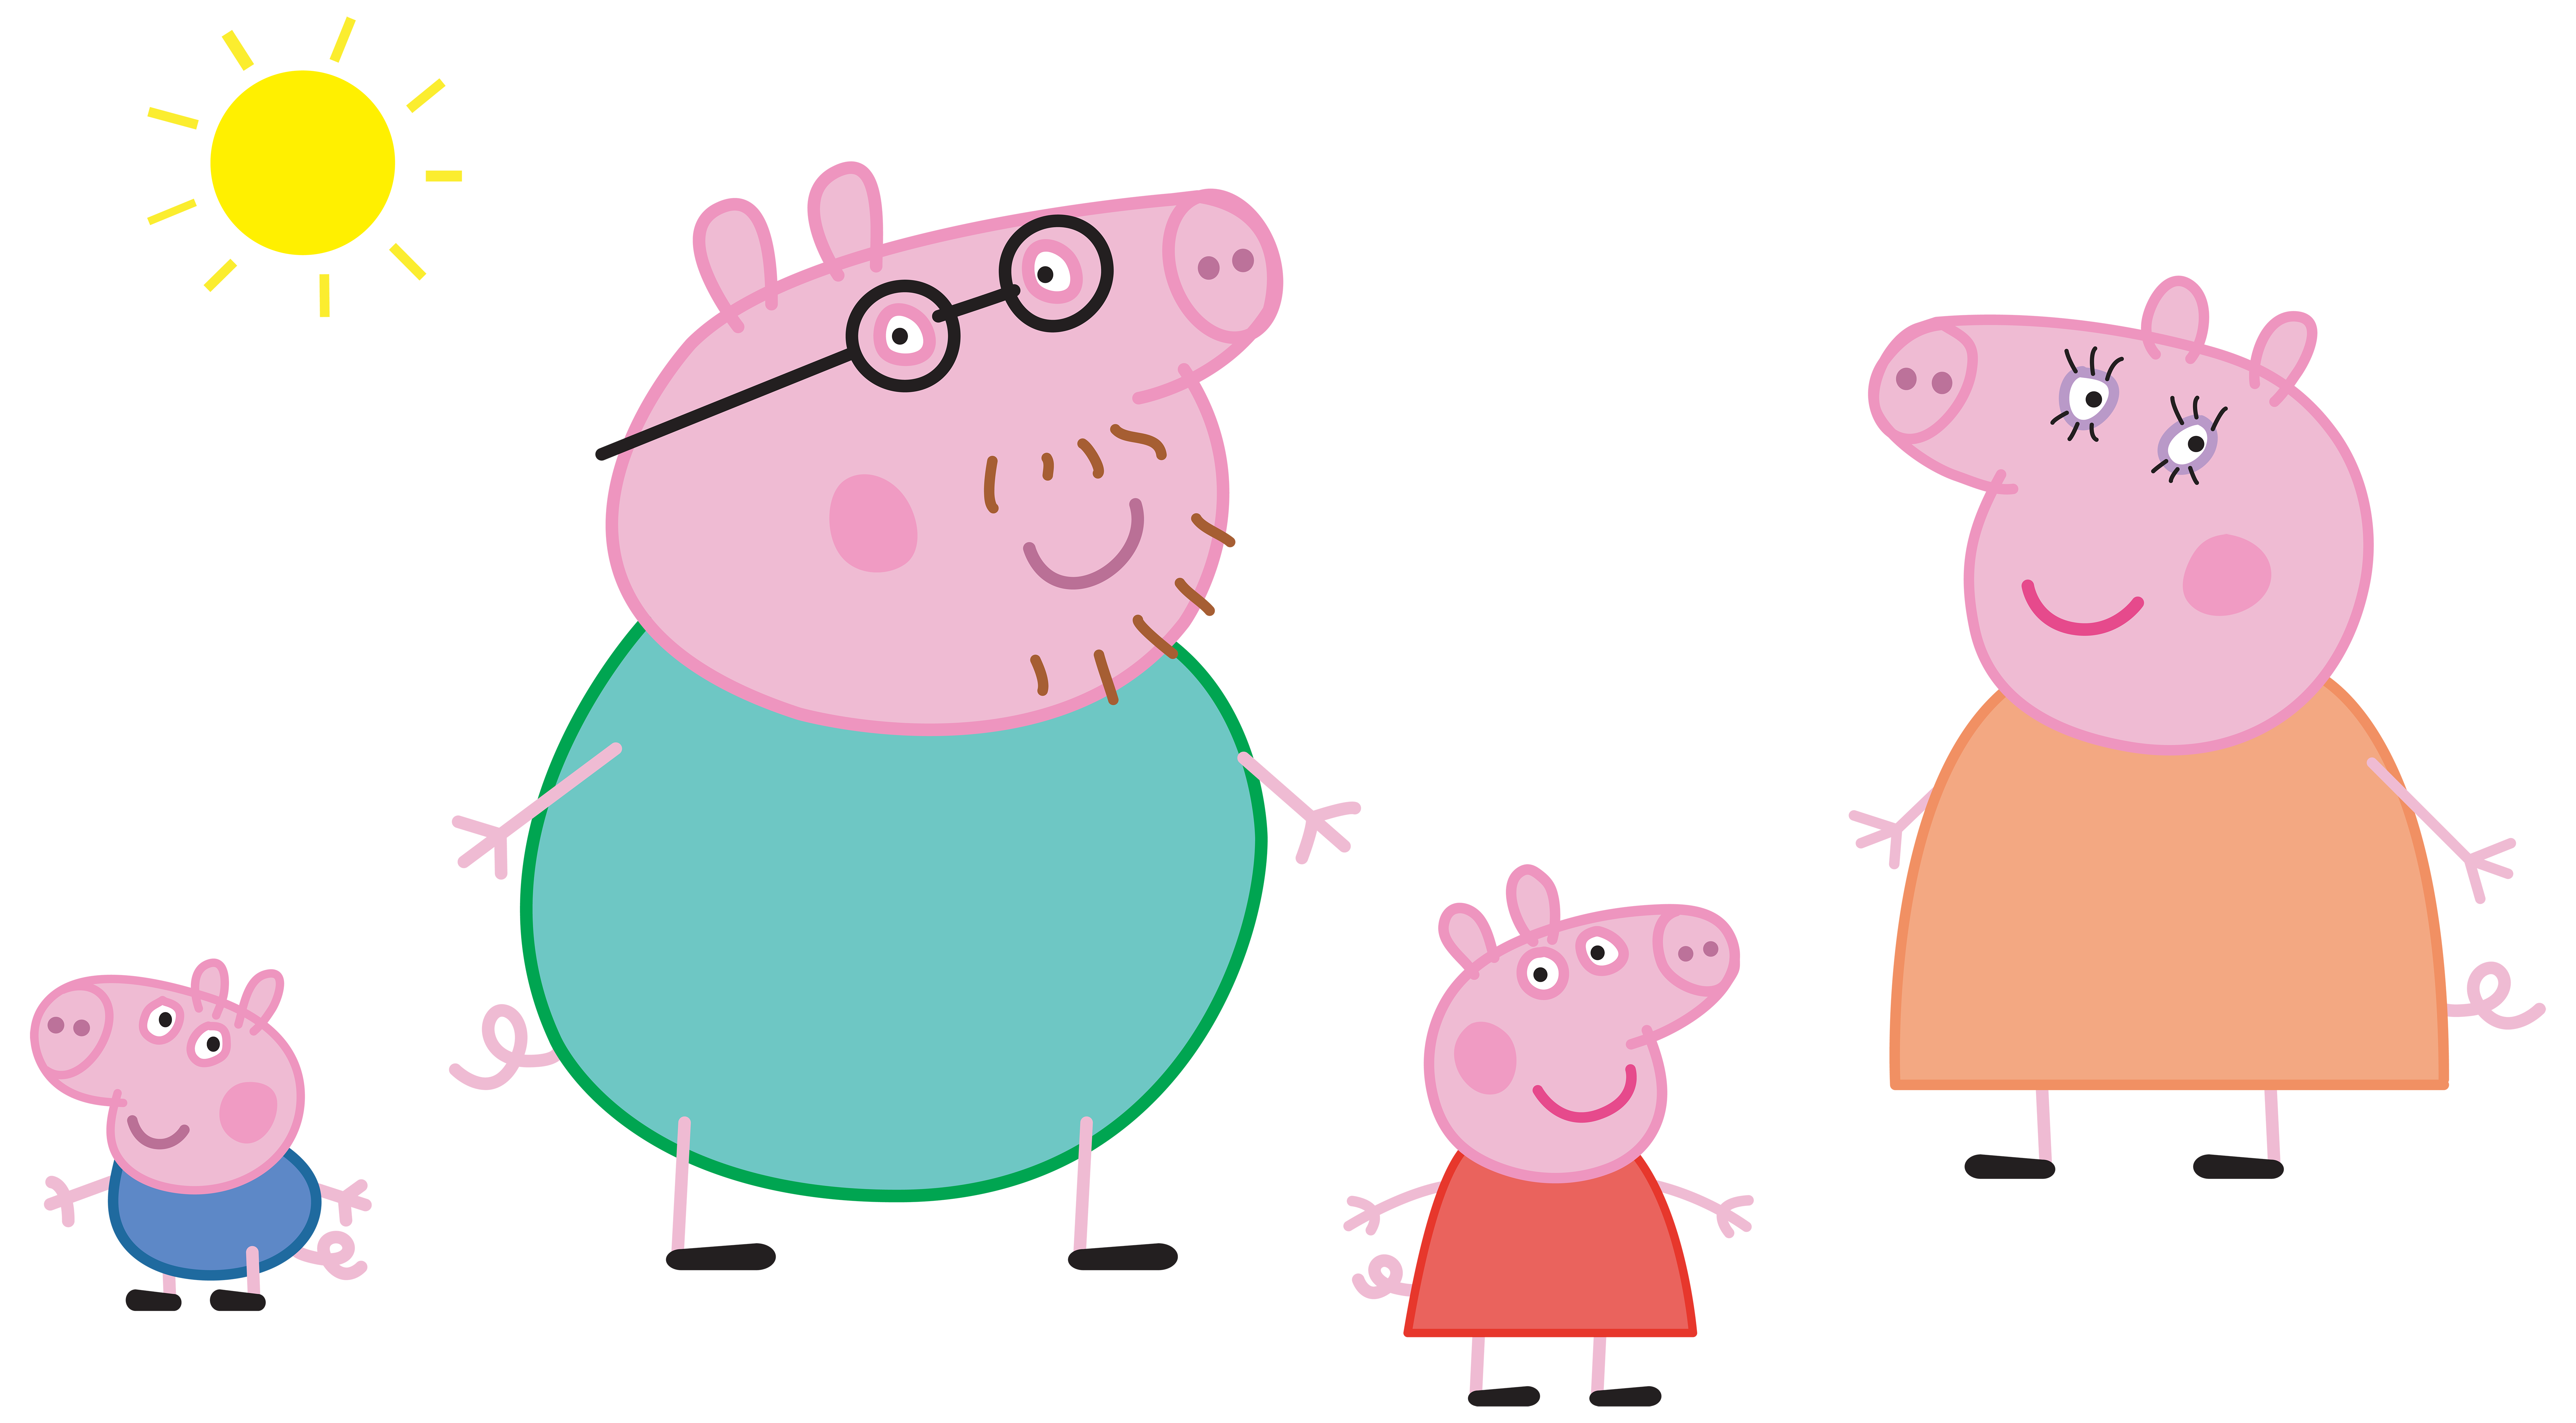 Pig halloween clipart graphic library 28+ Collection of Peppa Pig Christmas Clipart | High quality, free ... graphic library